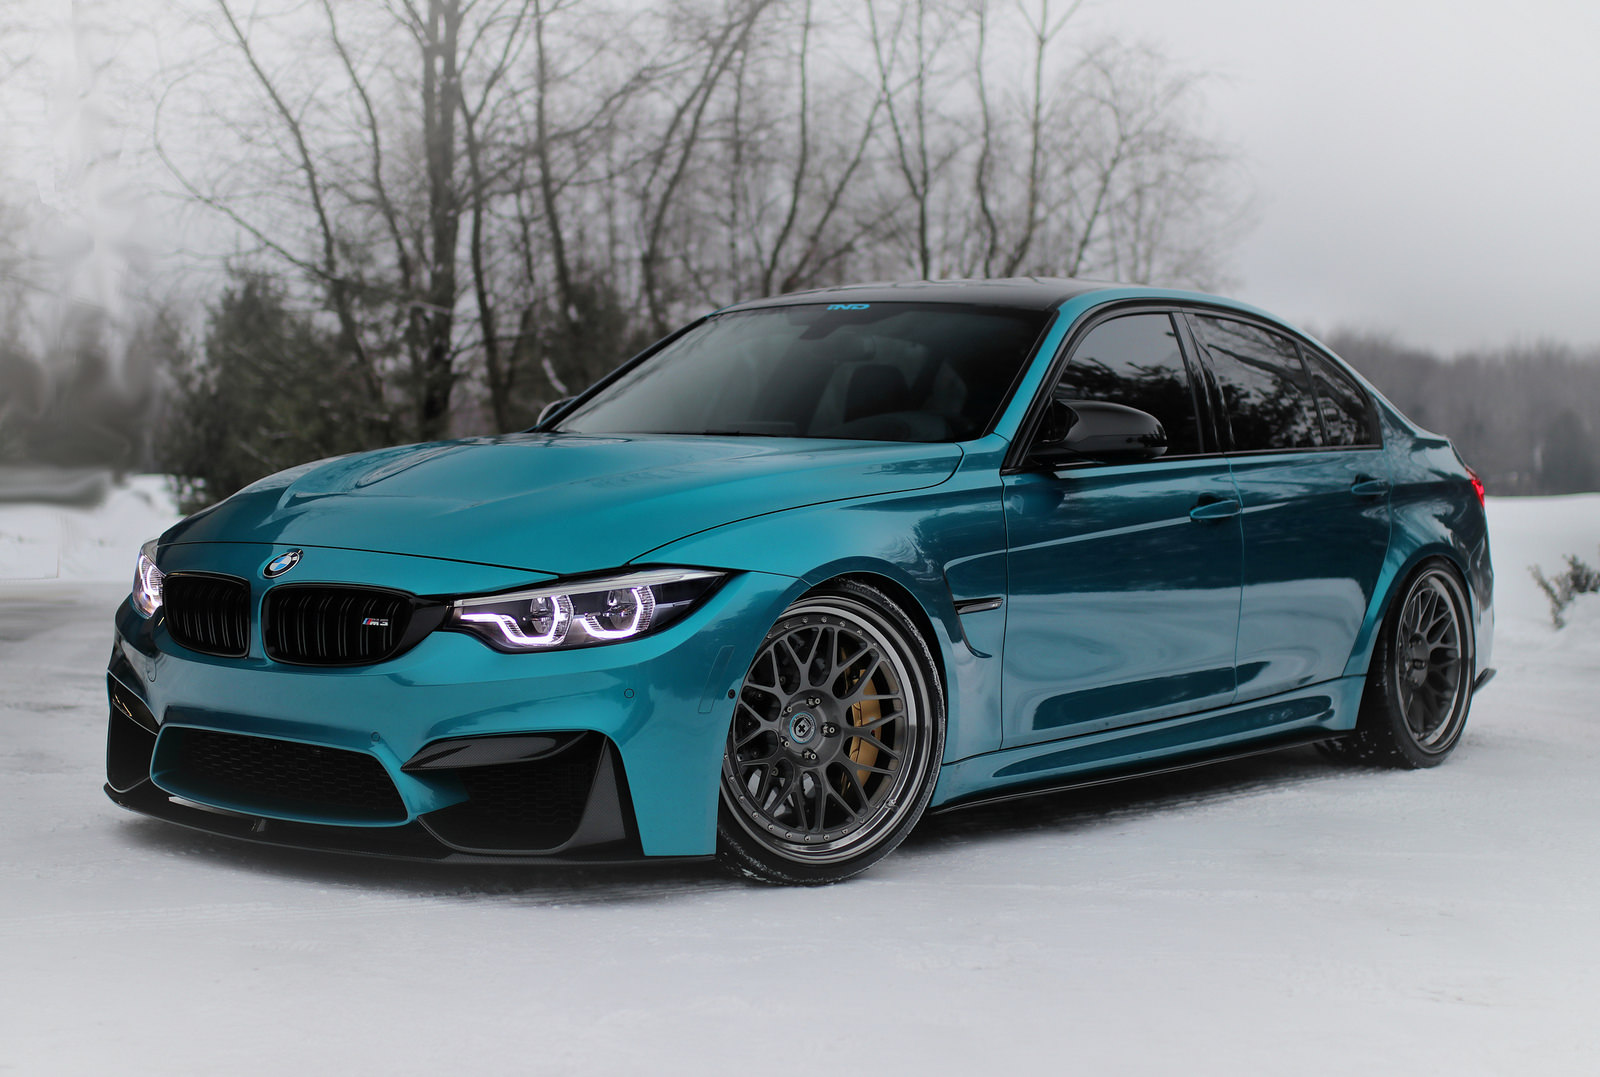 bmw m3 with subtle mods shines in atlantis blue paintjob carscoops. Black Bedroom Furniture Sets. Home Design Ideas